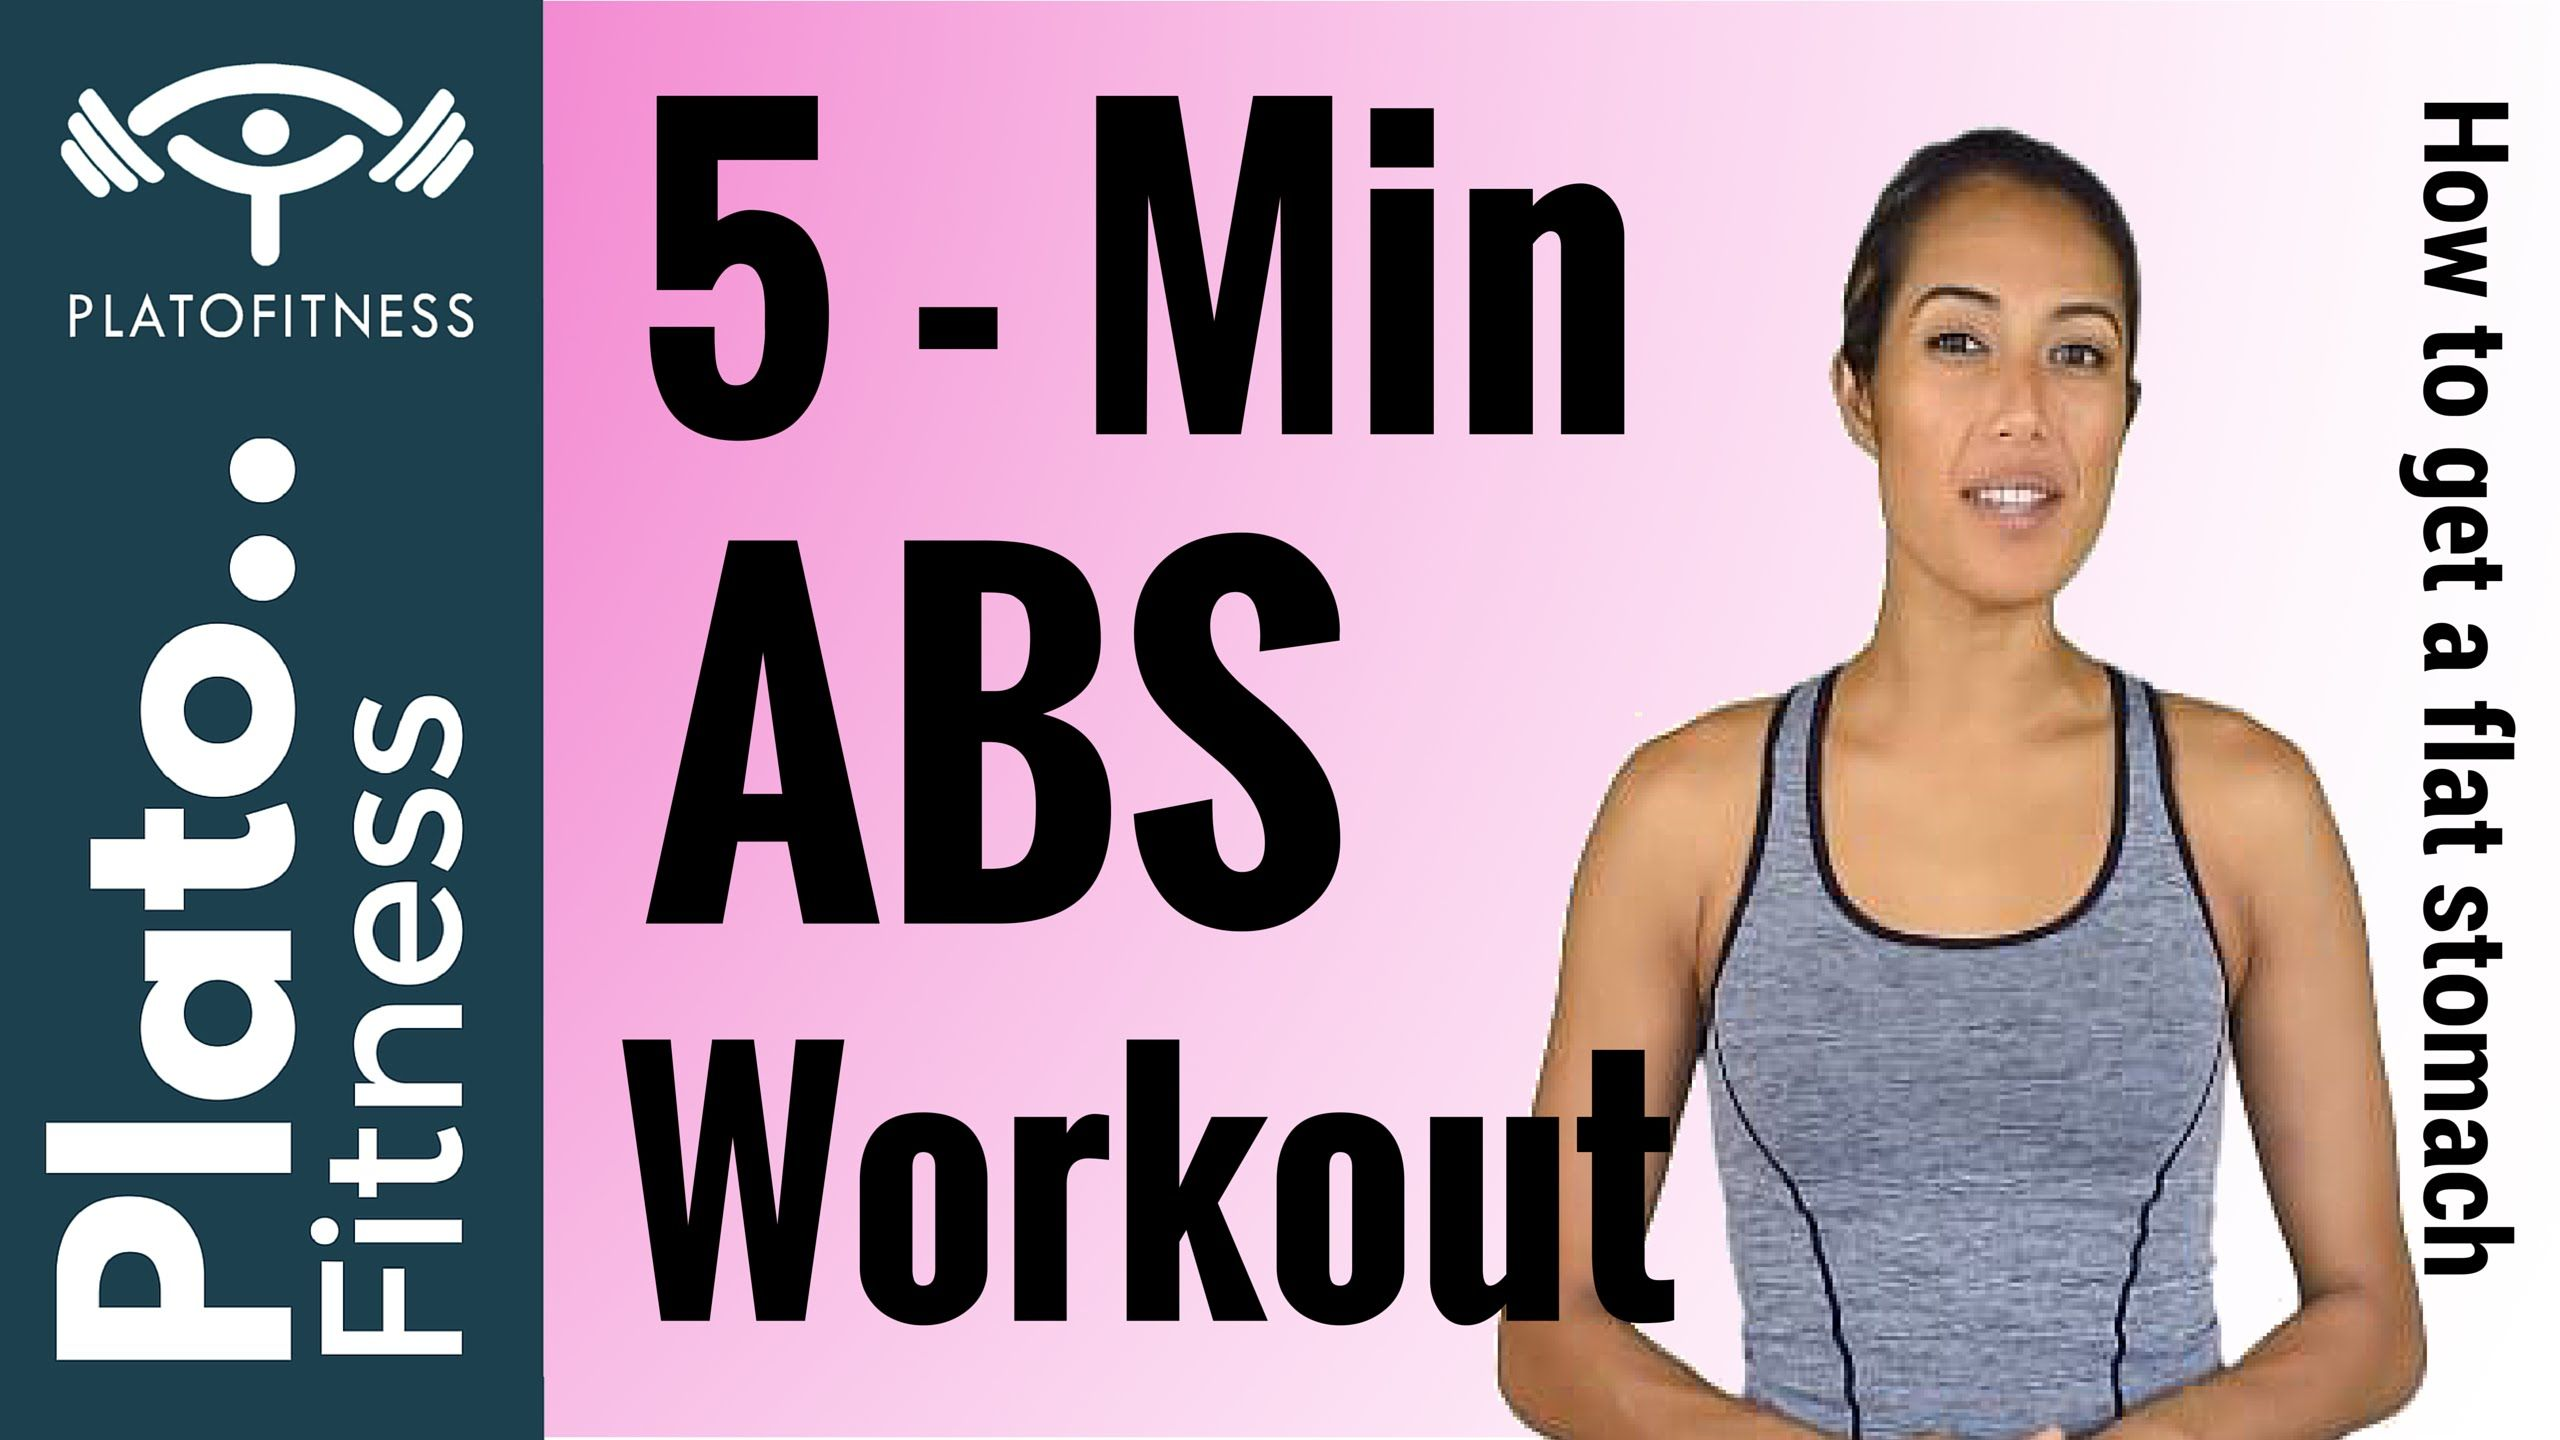 Home Abs Workout Learn how to get a abs, get a flat stomach and loose weight at the same time, Just follow along here with Marine at Plato Fitness. www.youtube.com/watch?v=btN_akdY1_k